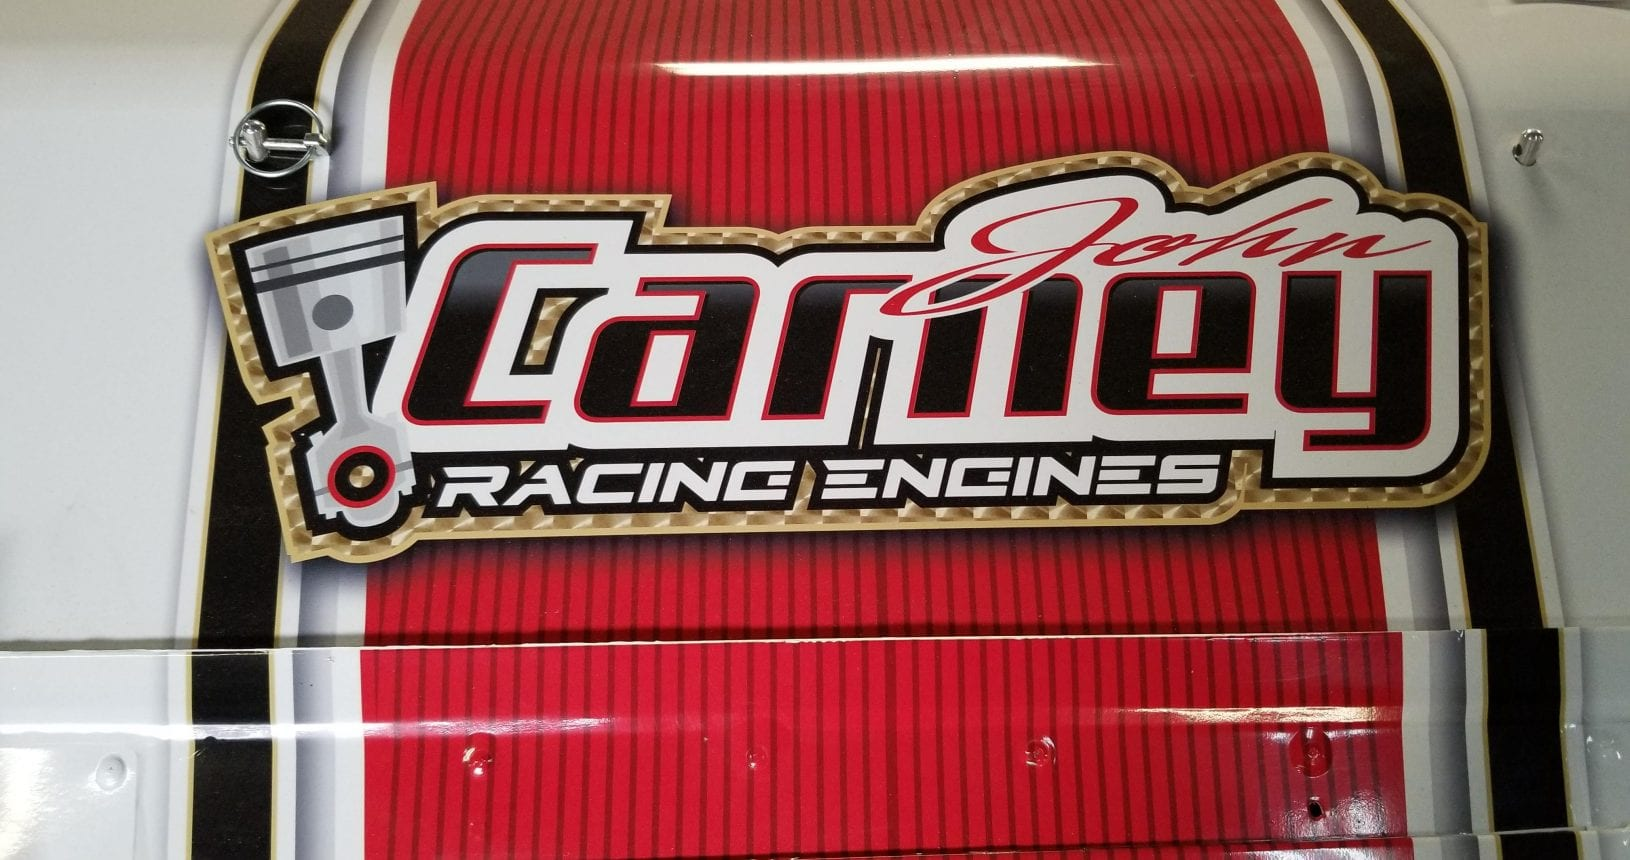 John Carney, Racing Engines, Super Truck, Las Cruces